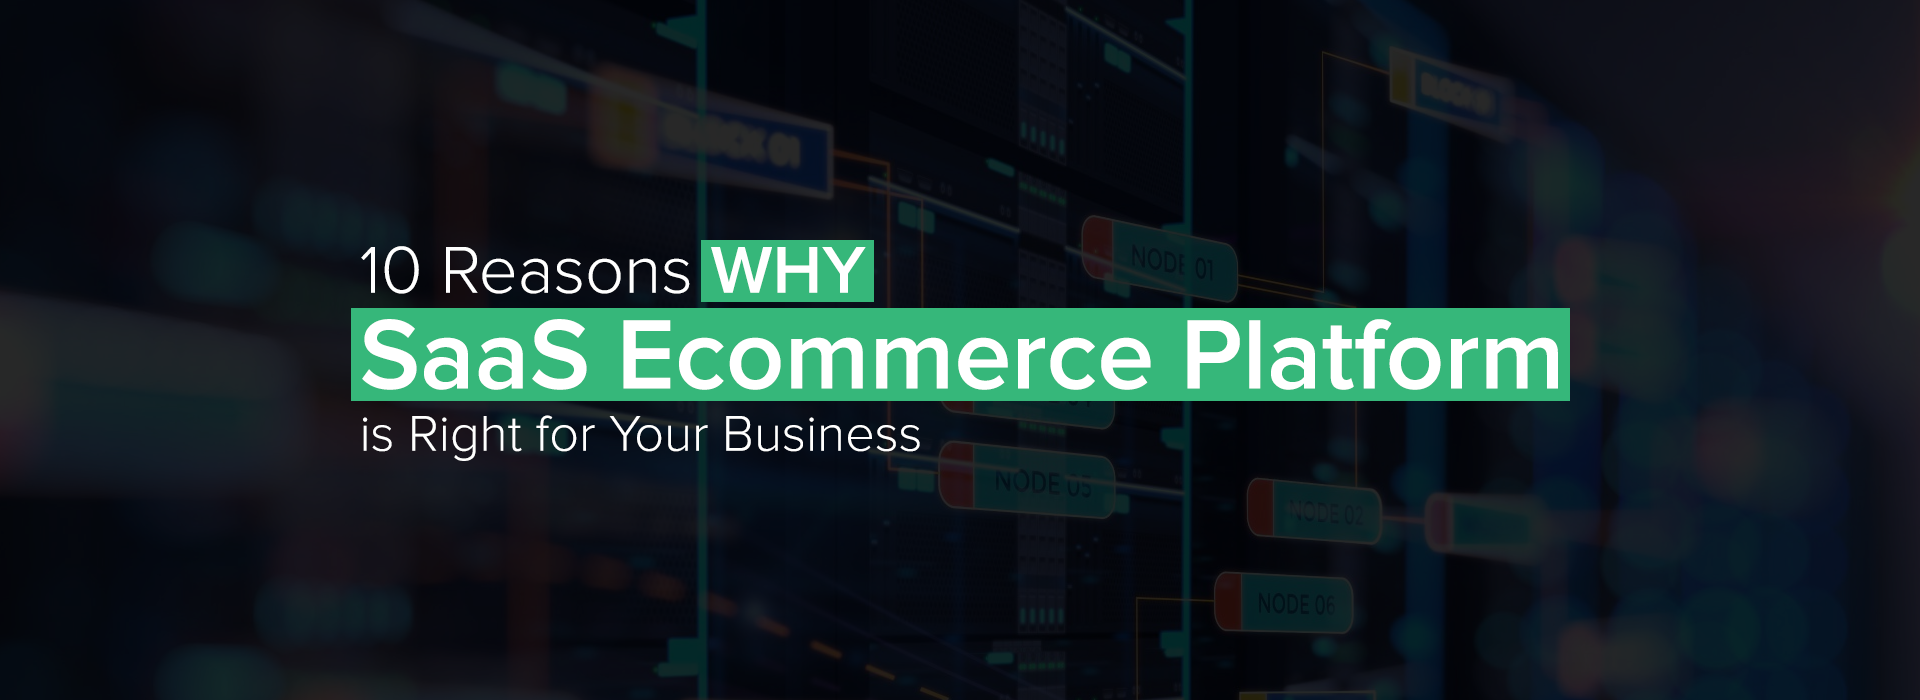 Why-SaaS-Ecommerce-Platform-is-Right-for-Your-Business